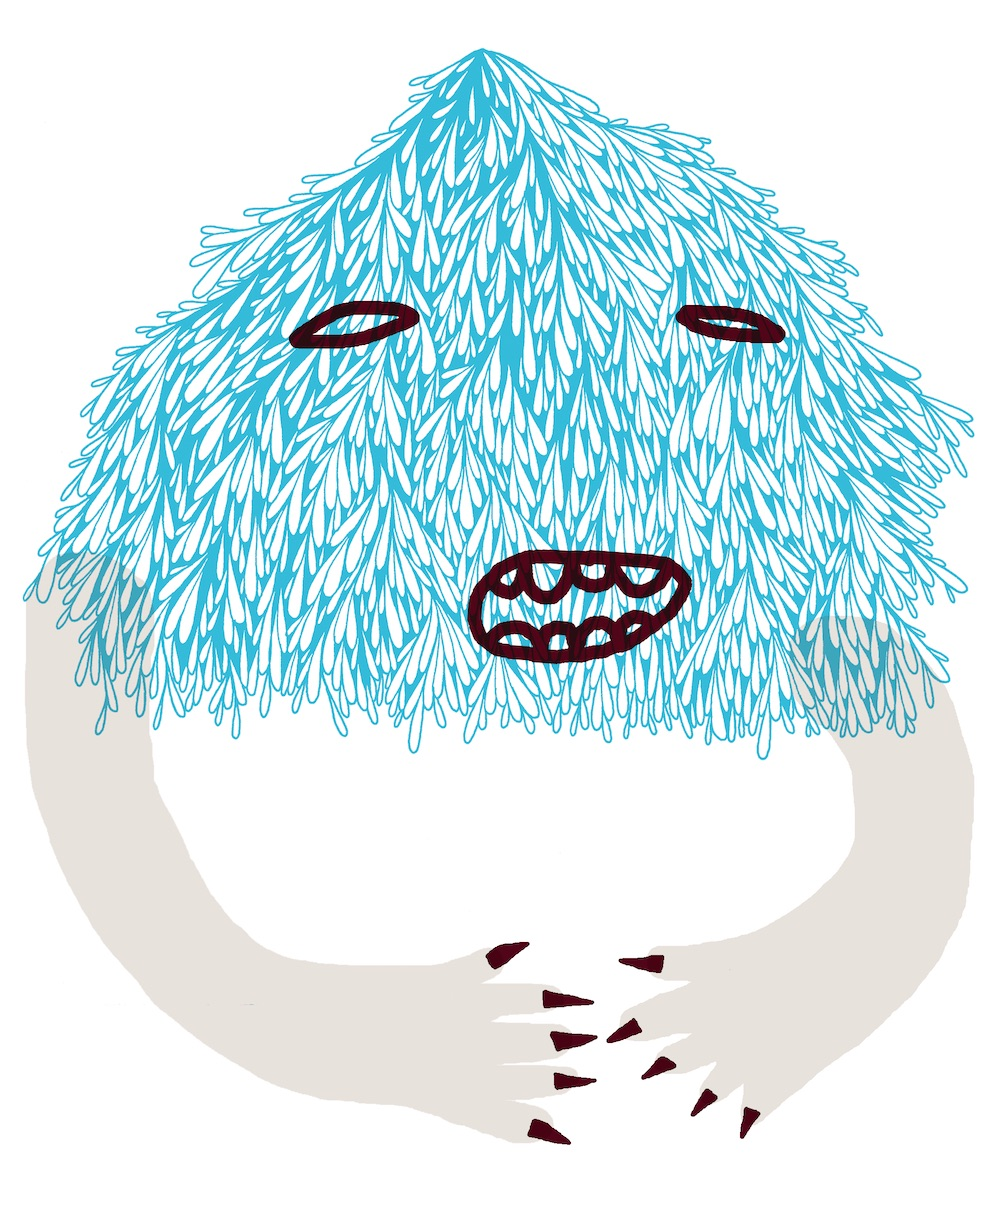 illustration, illustrations, illustrator, illustrators, smile, smiling, happy, teeth, texture, droplet, droplets, hand, hands, monster